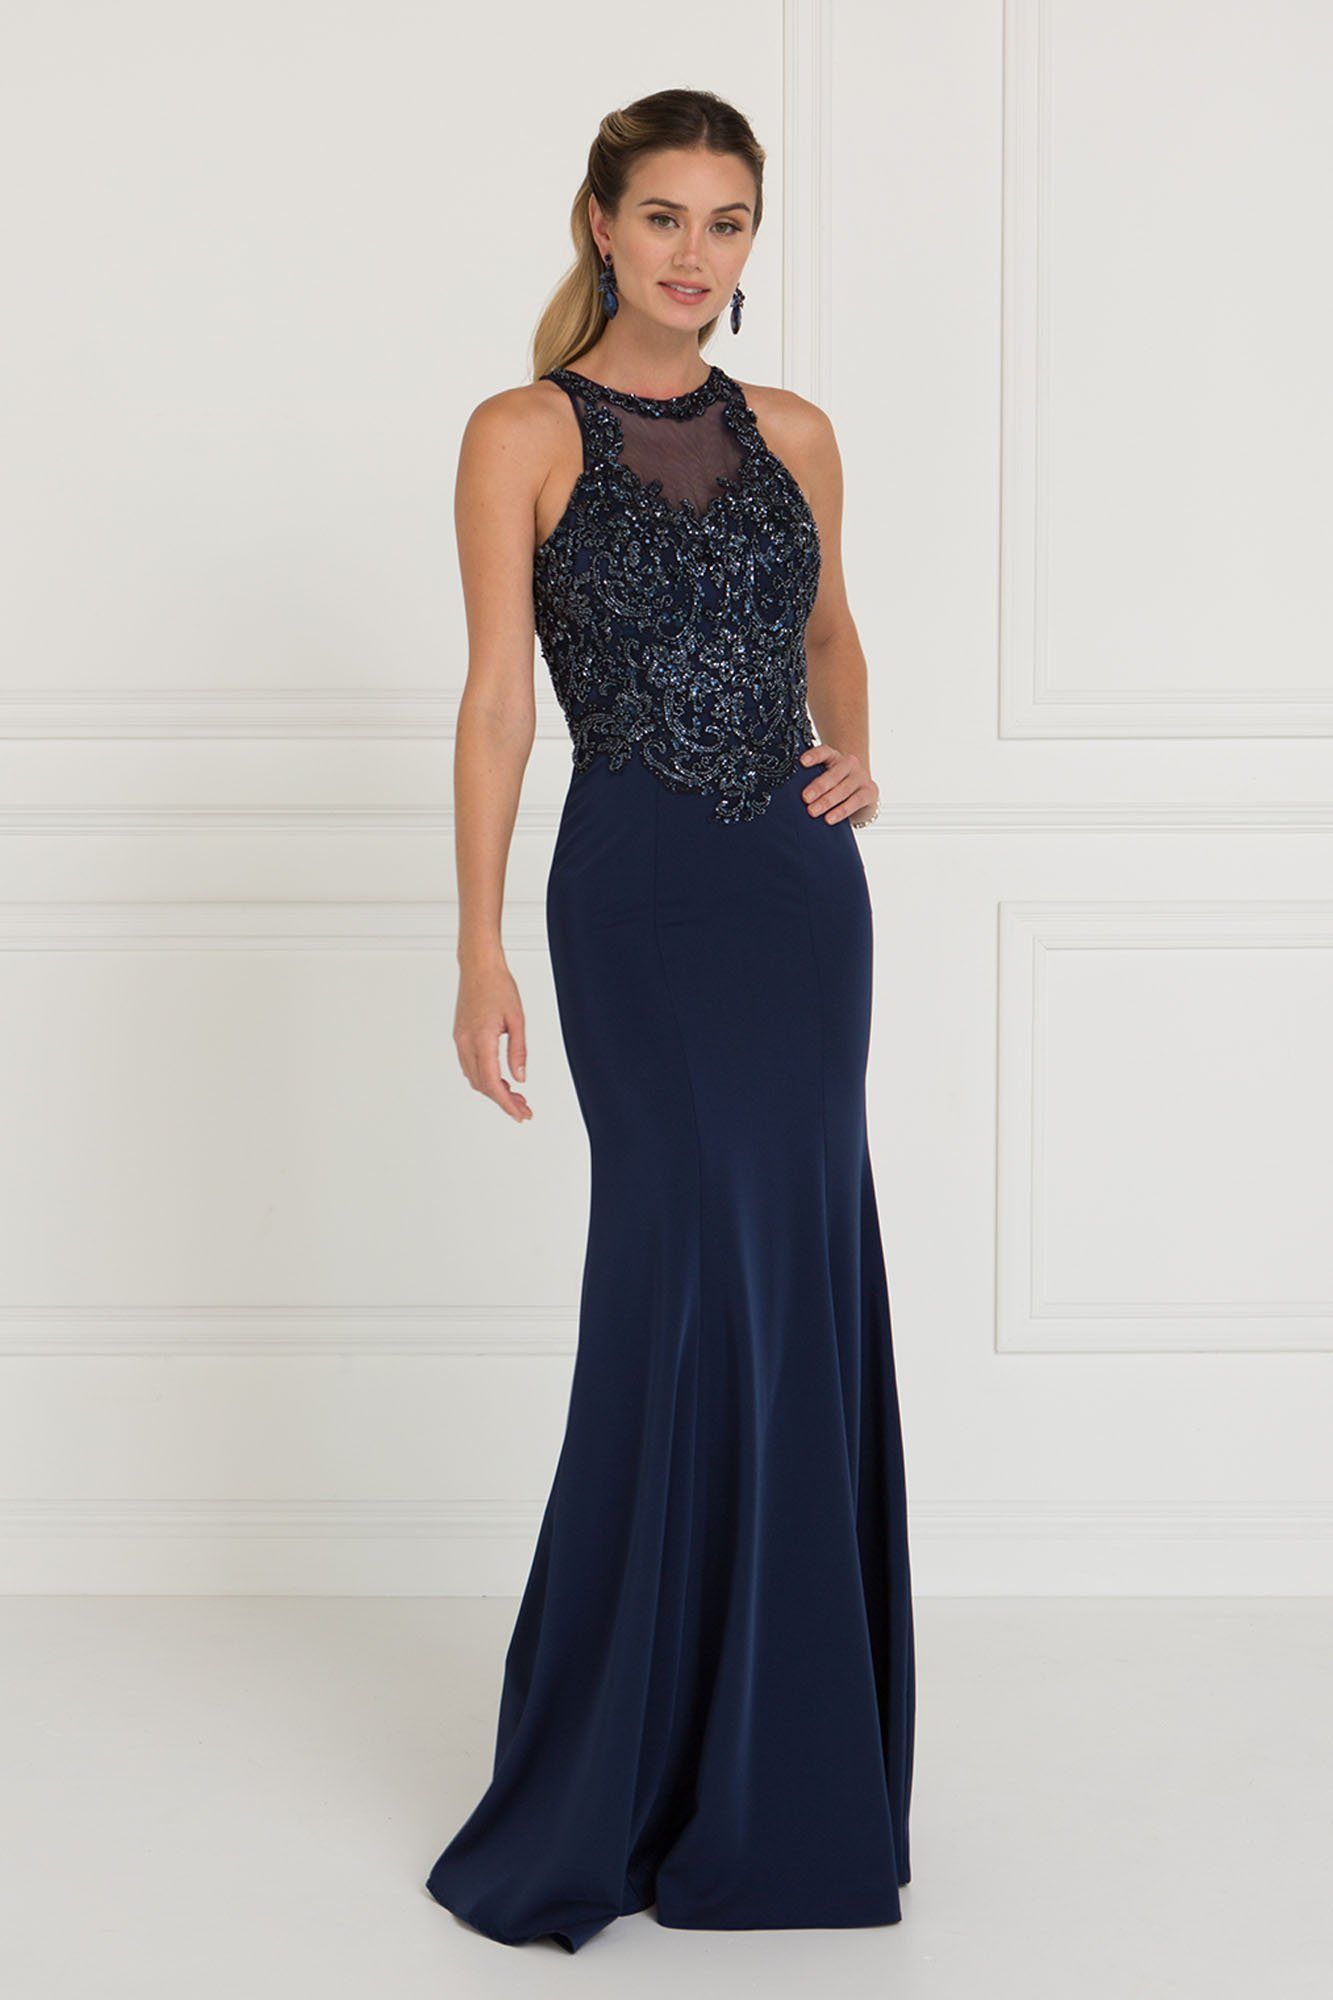 Navy Evening Dress Prom Gown Gls 1568 Simply Fab Dress